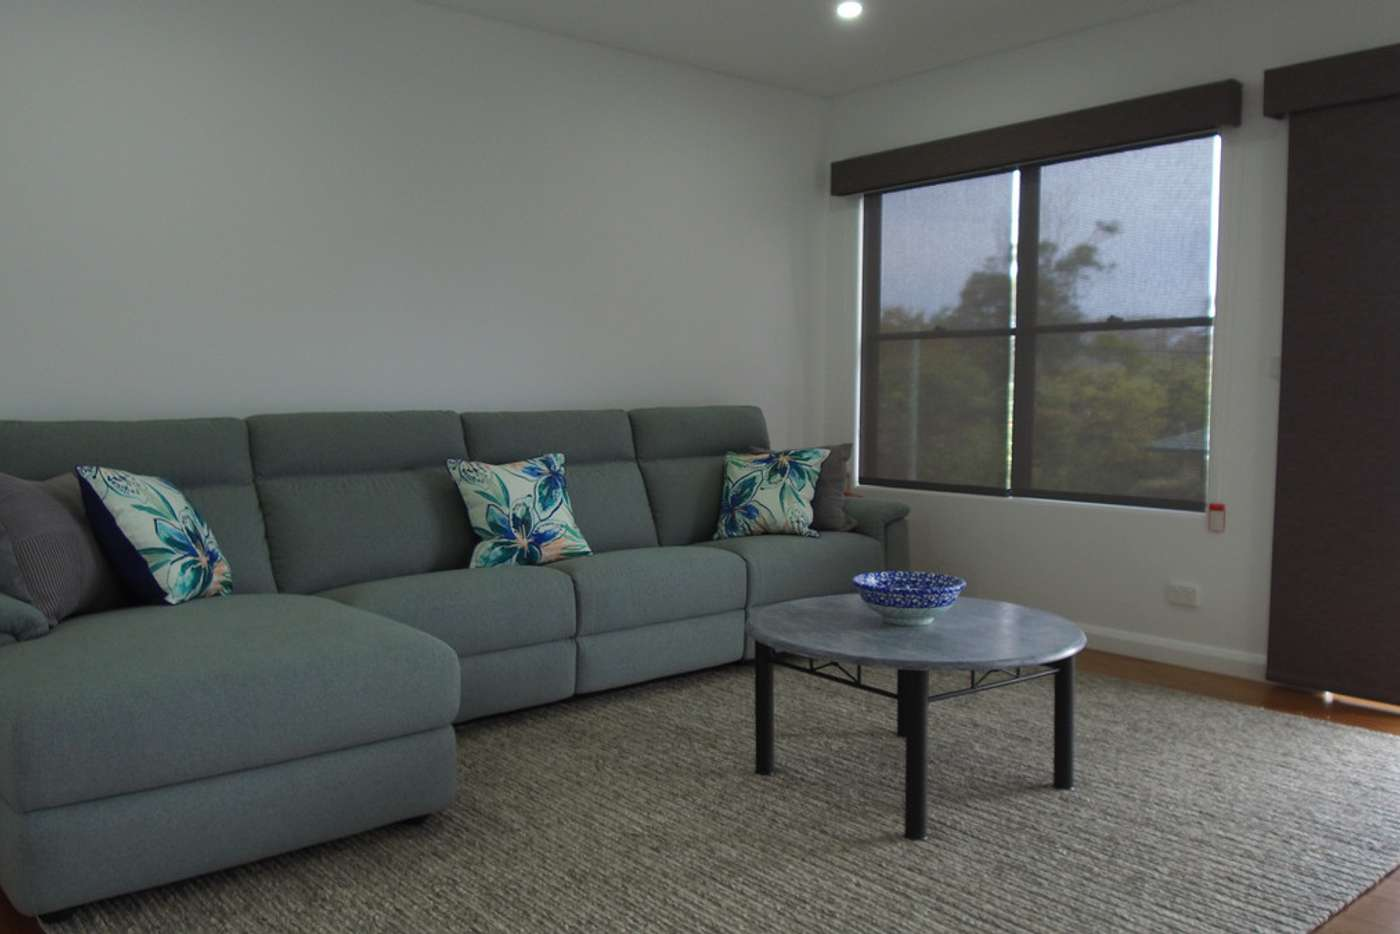 Sixth view of Homely house listing, 14 David Campbell Street, North Haven NSW 2443